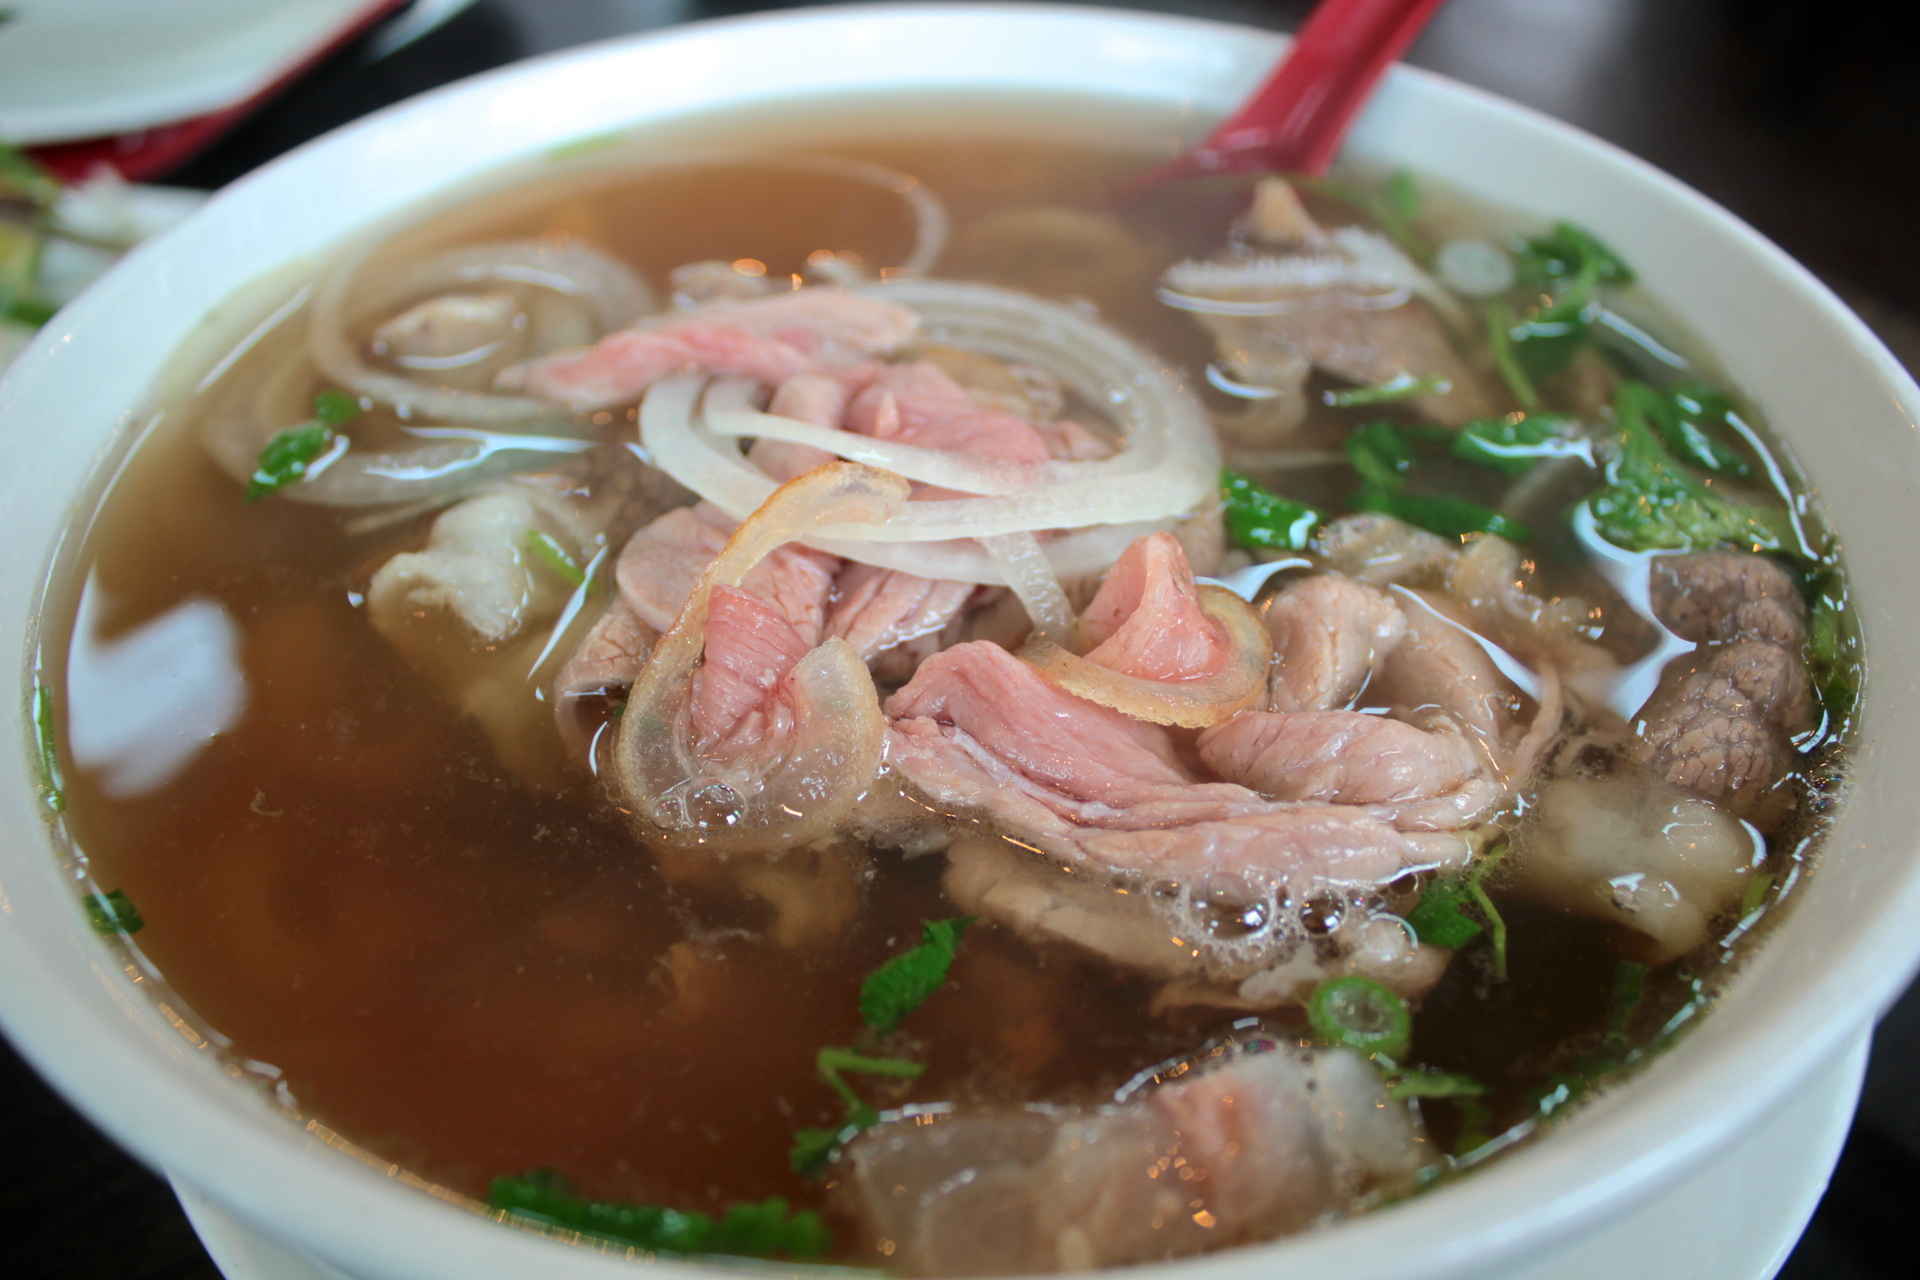 The smoked veal special pho at Pho Factory.